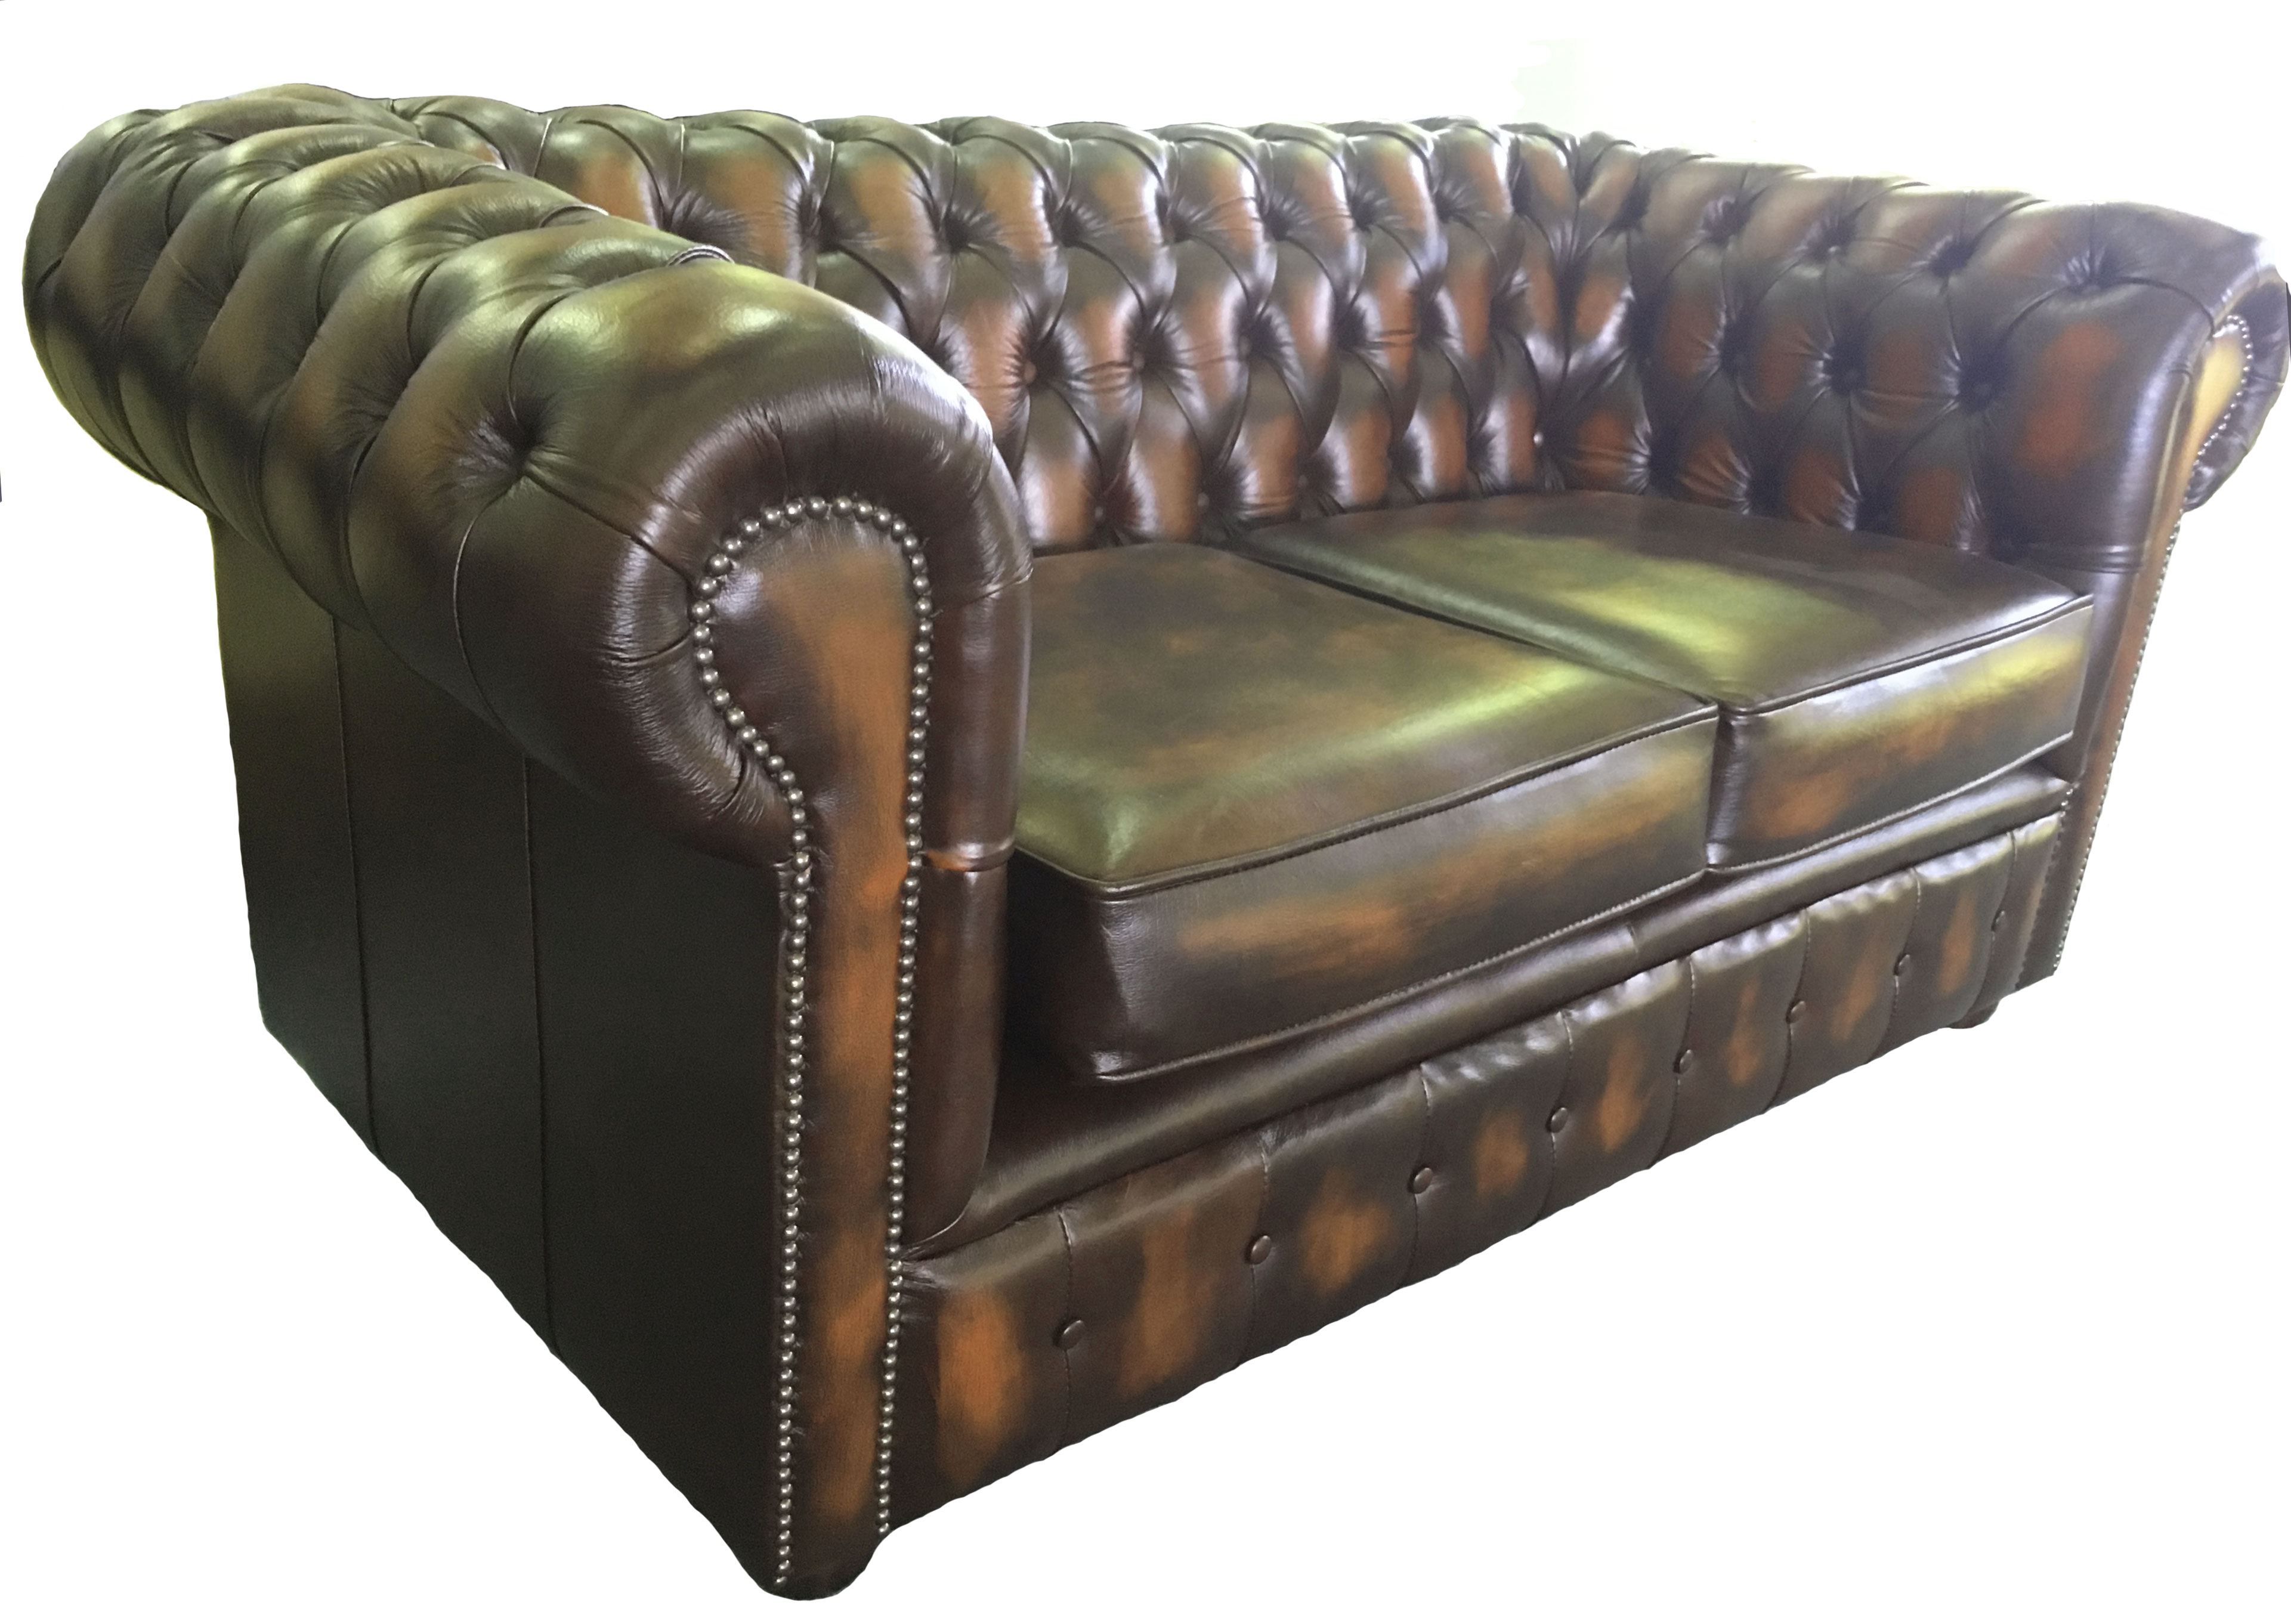 Chesterfield london 100 genuine leather two seater sofa for Chesterfield furniture history